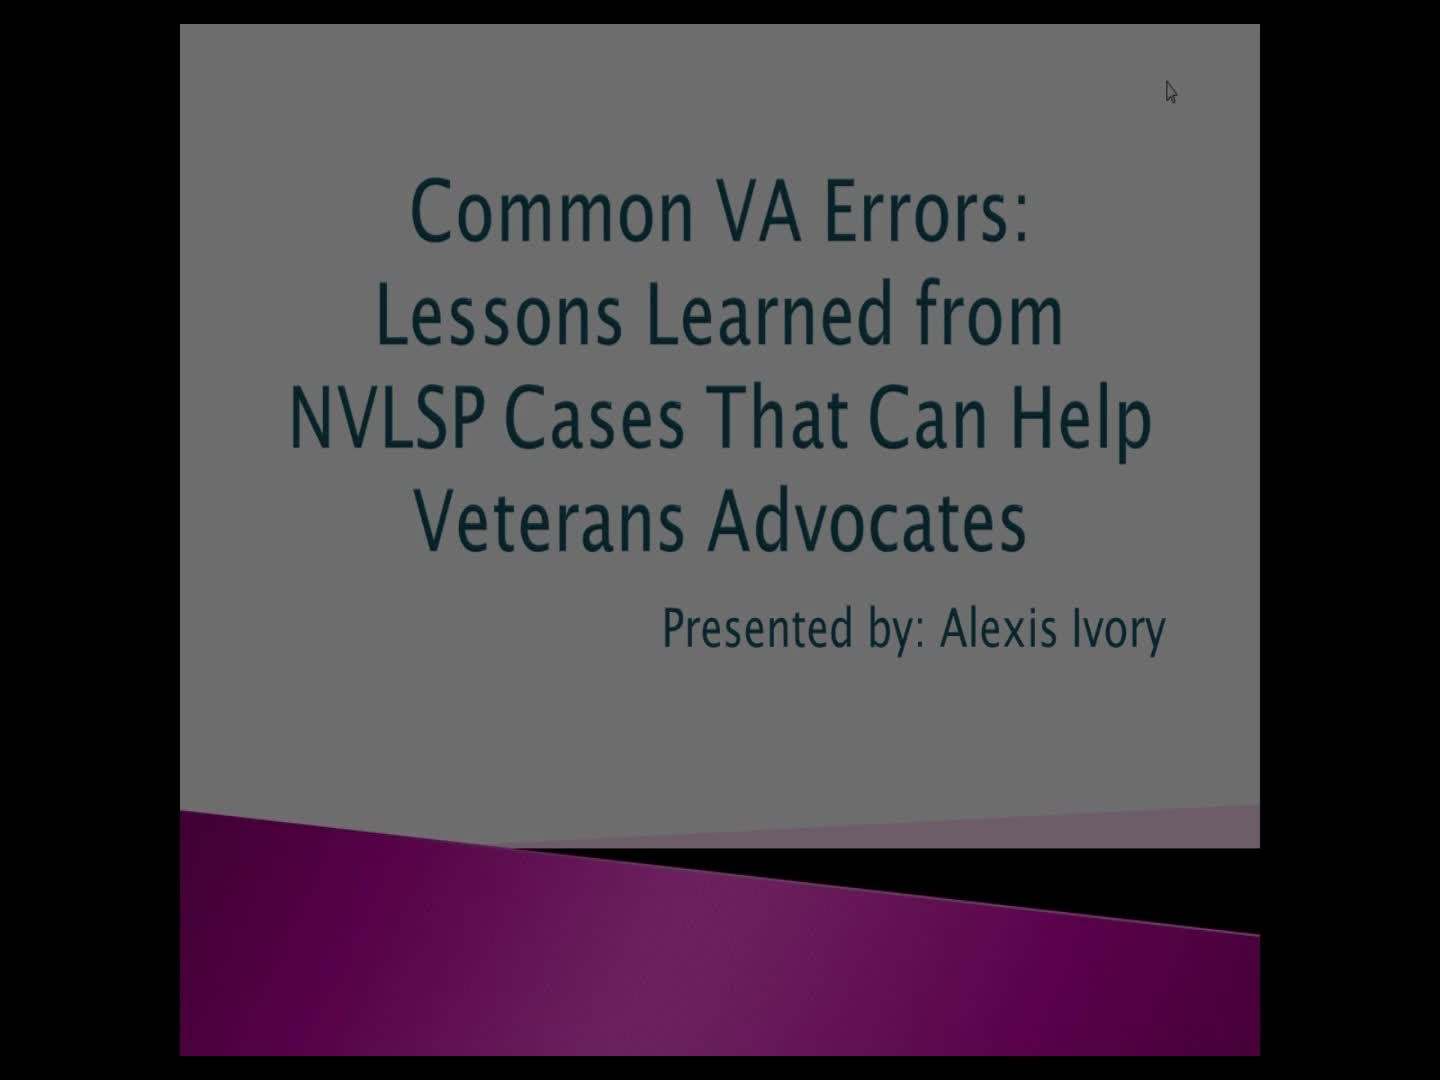 common va errors: lessons learned from nvlsp cases that can help